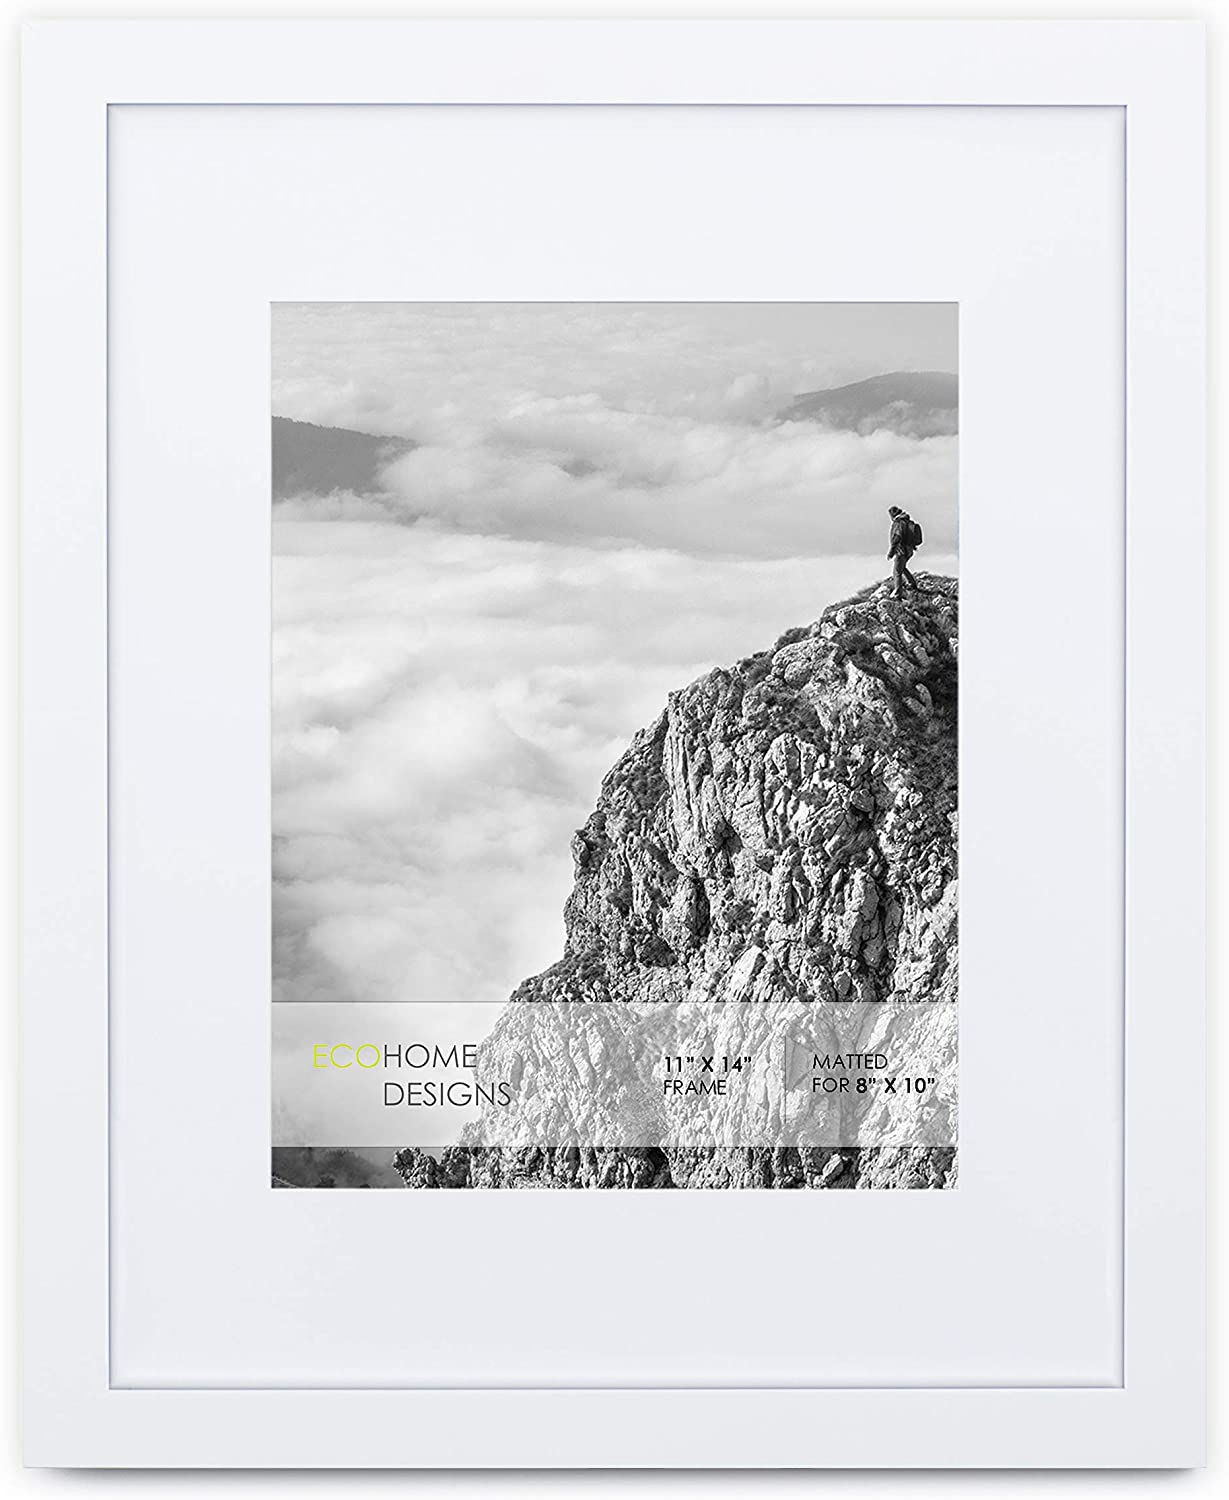 11x14 White Picture Frame - Matted for 8x10 Poster, Frames by EcoHome